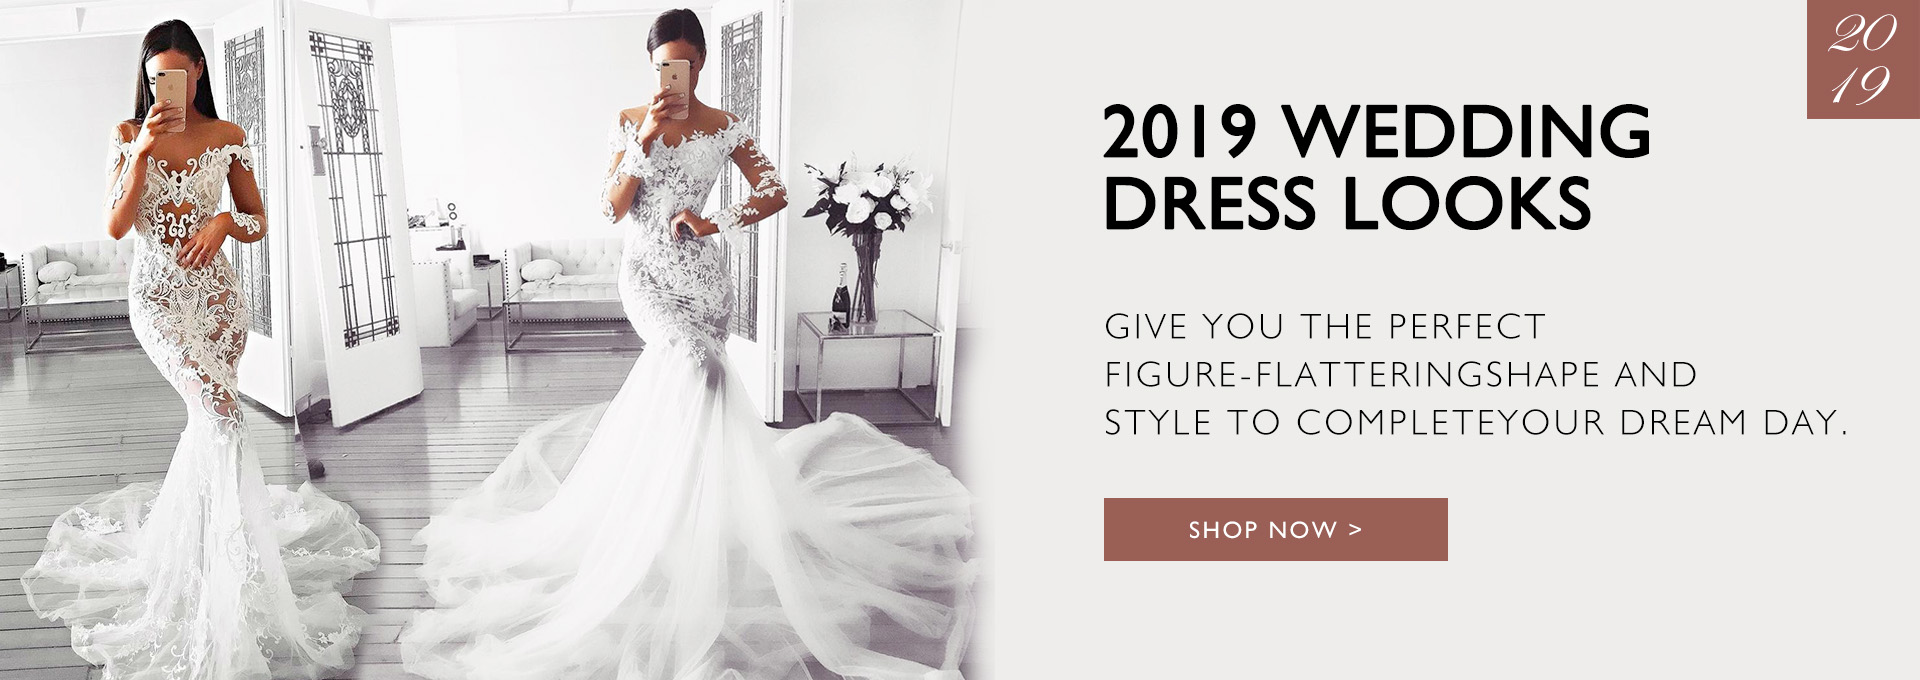 wedding dresses 2019